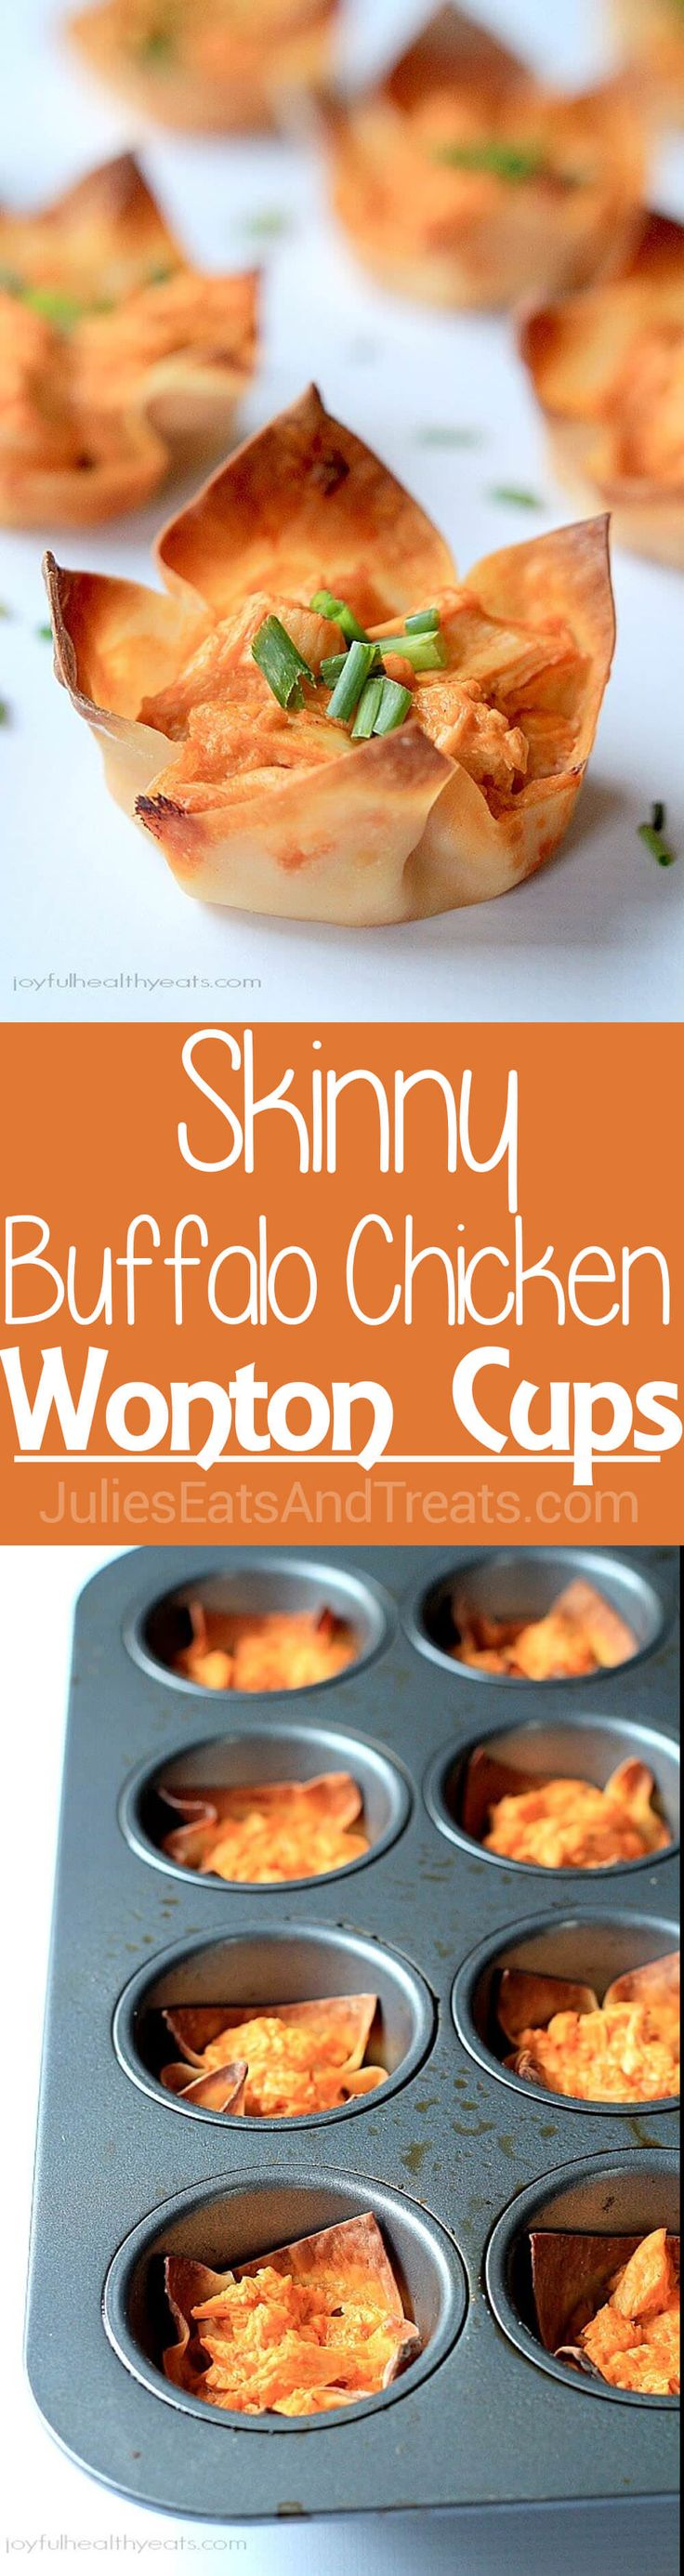 "Skinny Buffalo Chicken Wonton Cups ~ Your favorite Buffalo Dip in ""skinny"" form and all packed inside a crispy wonton wrapper! via @julieseats"